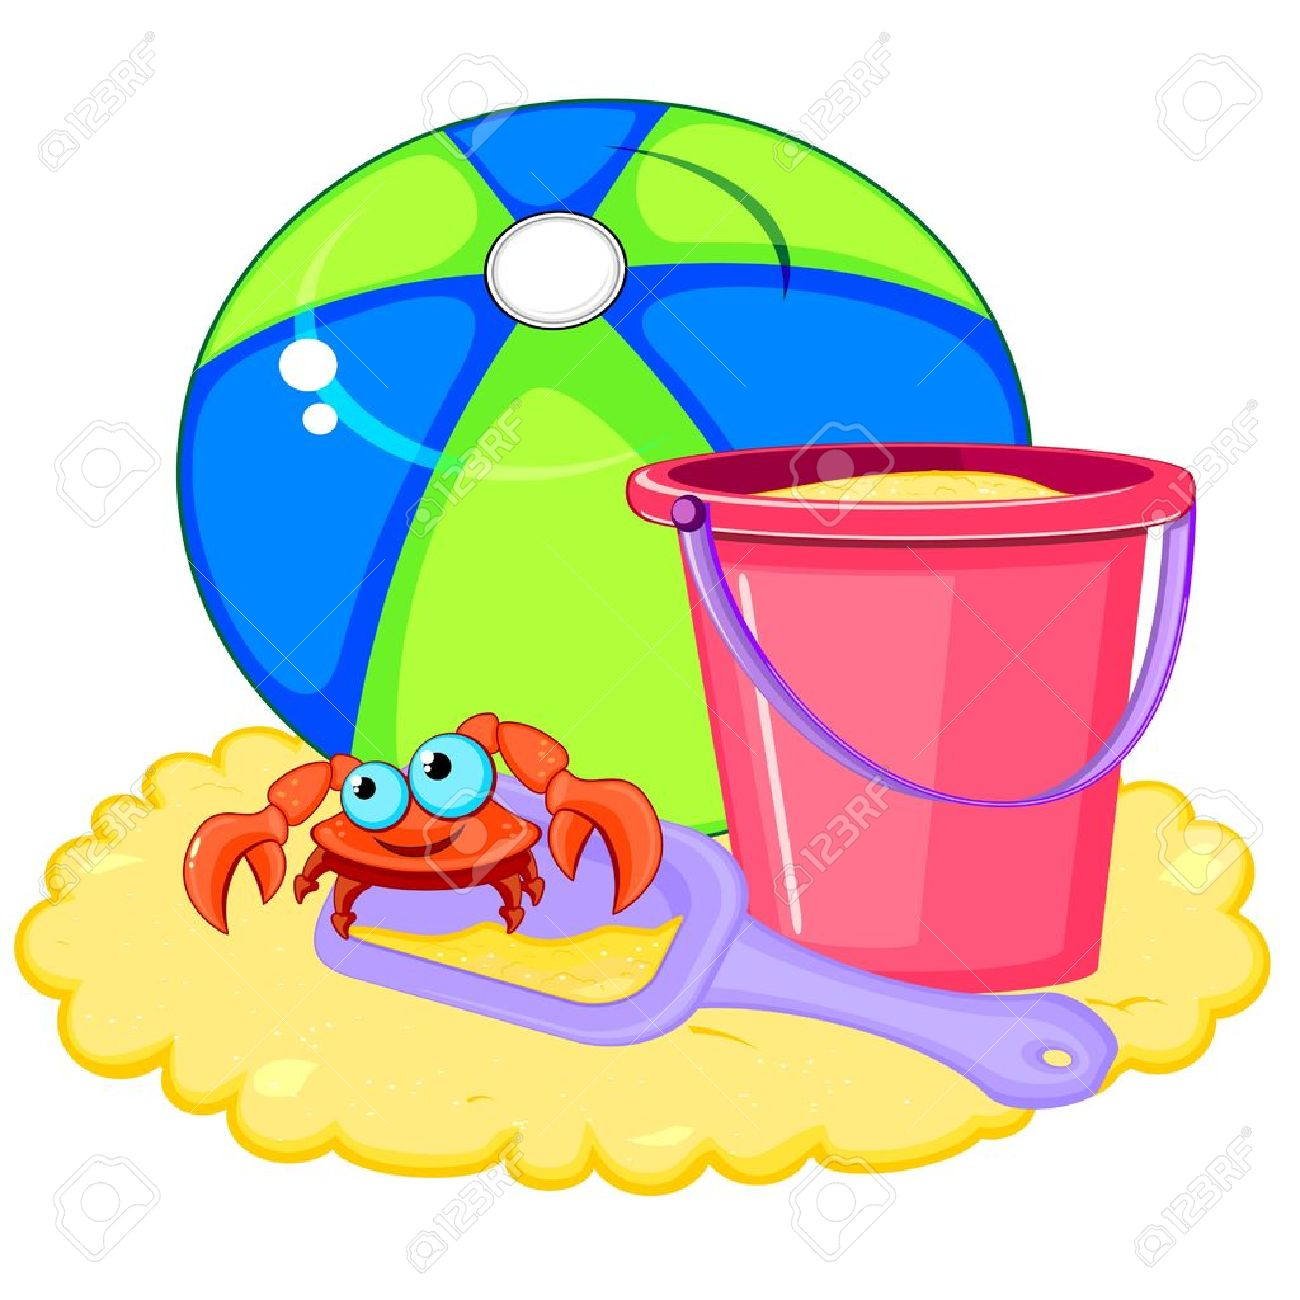 Sand Bucket Clipart | Free download on ClipArtMag